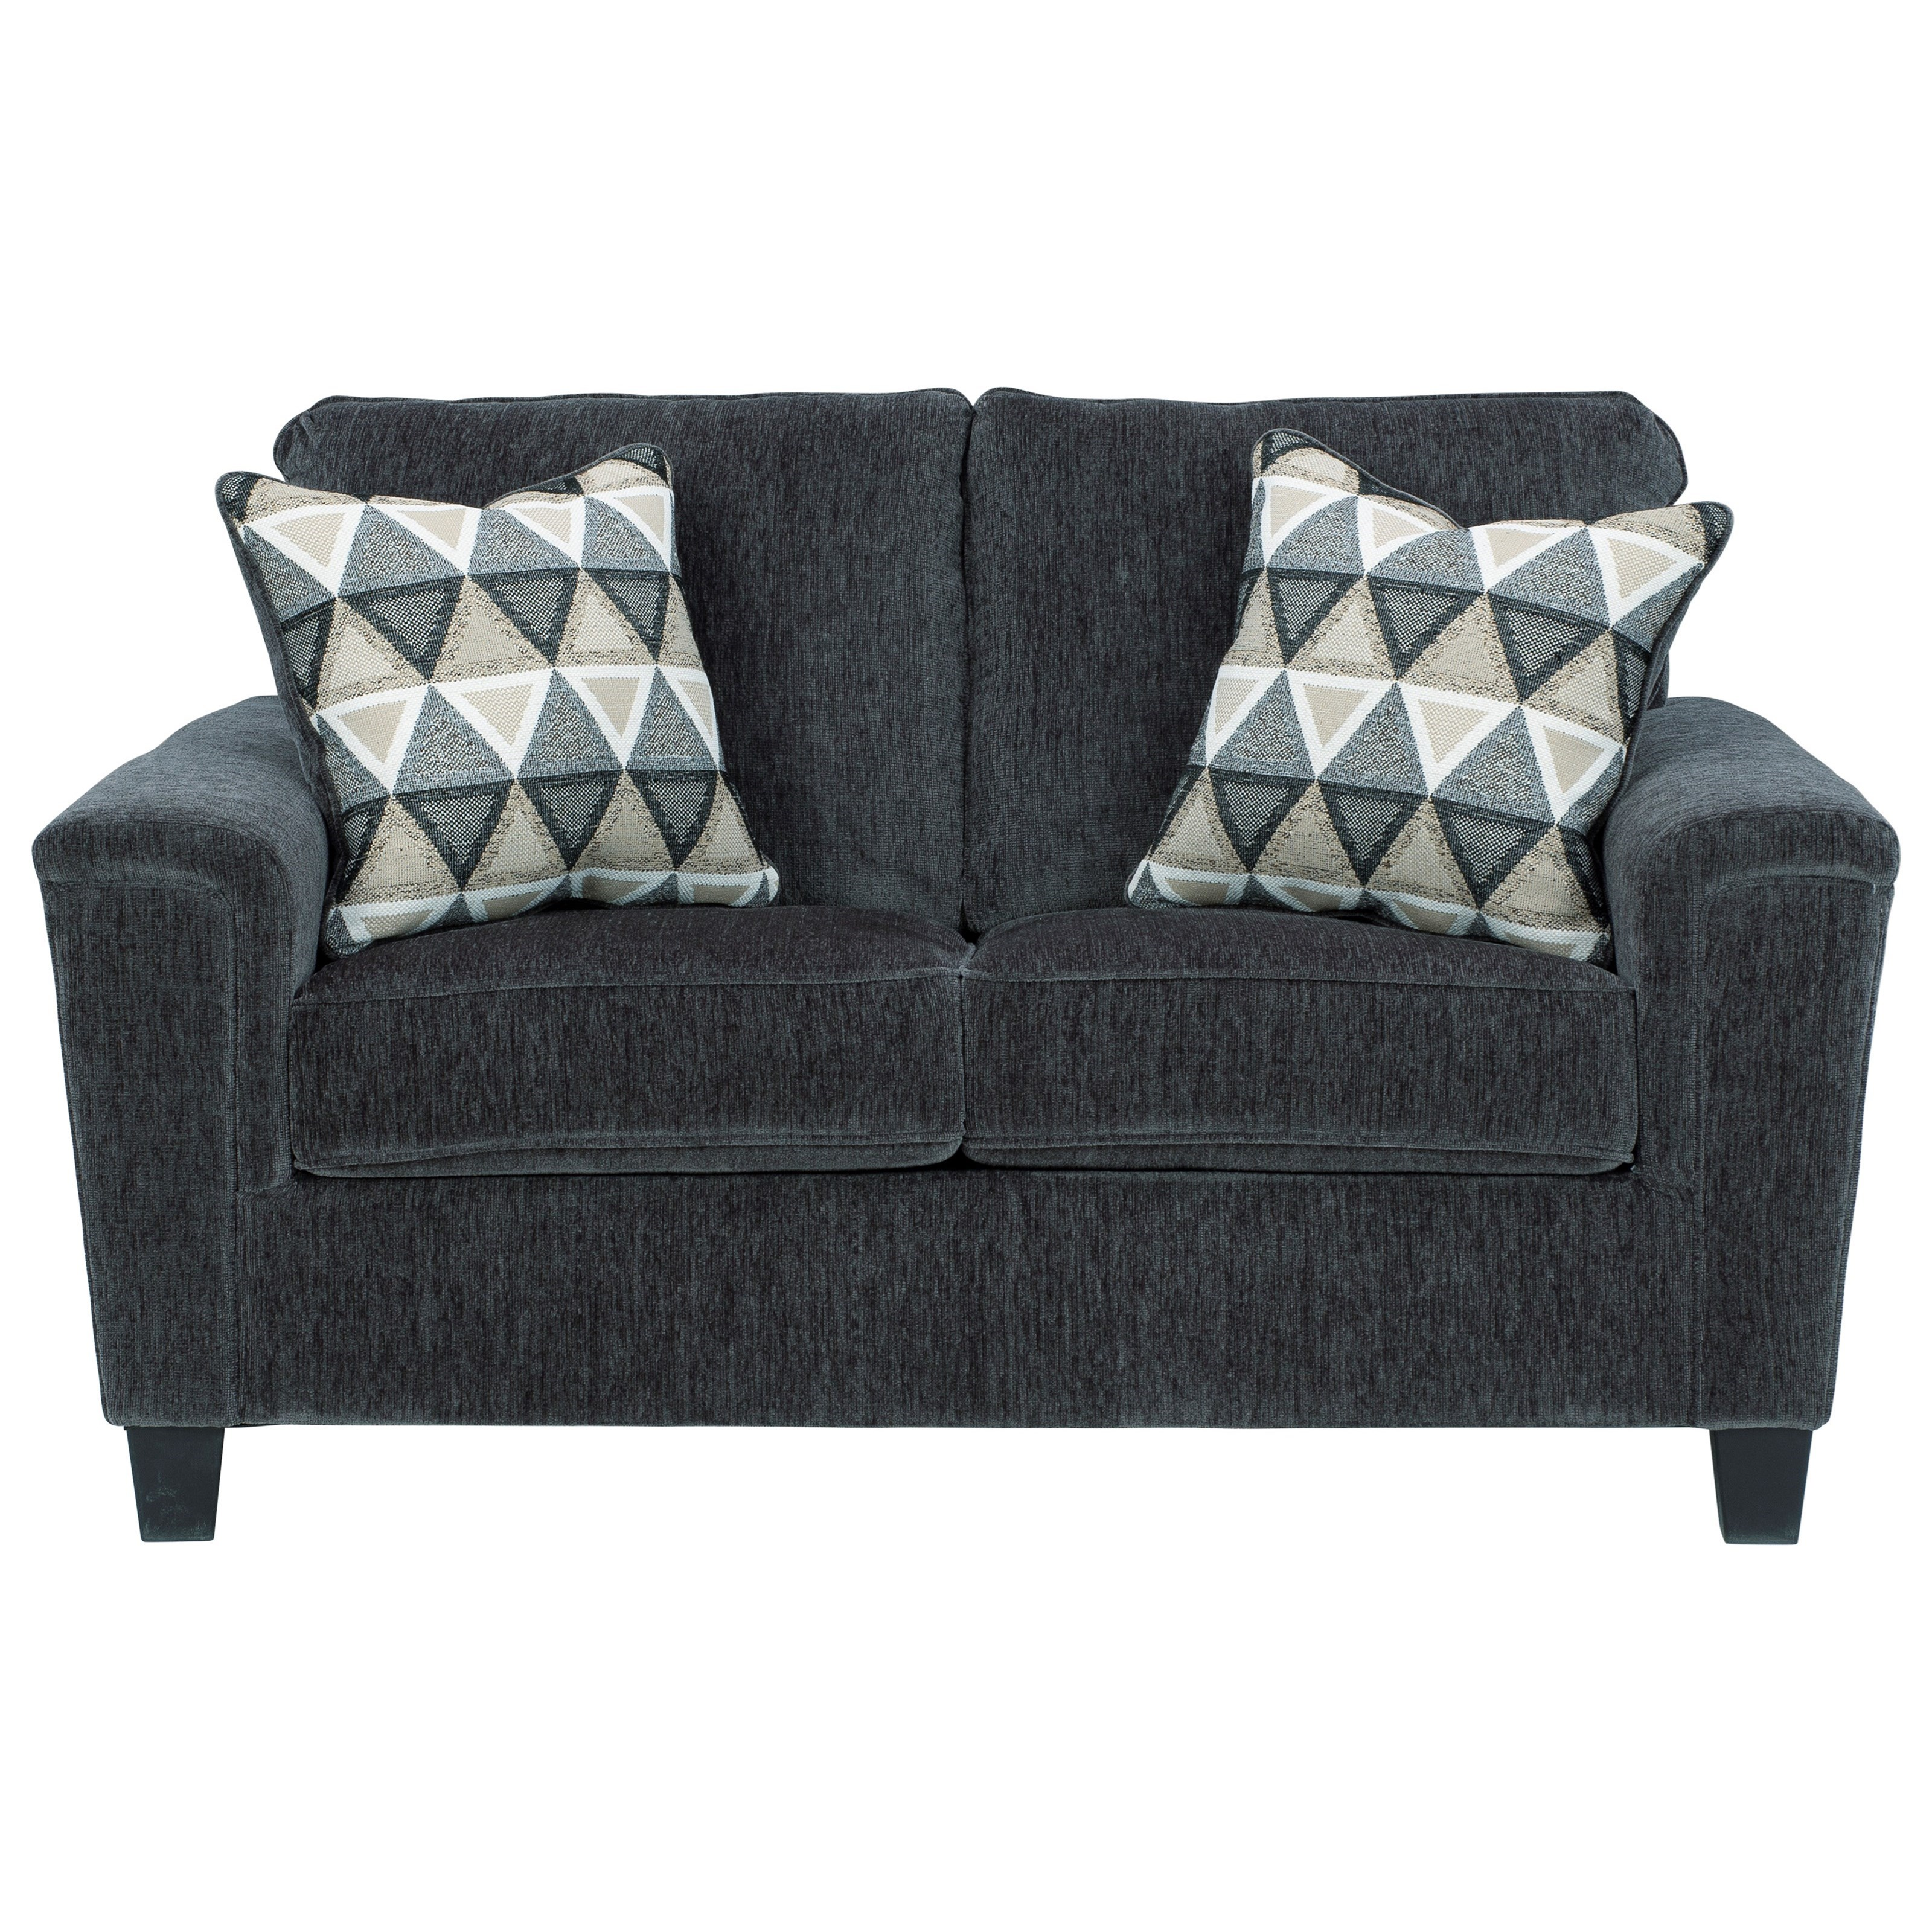 Abinger Loveseat by Signature Design by Ashley at Standard Furniture